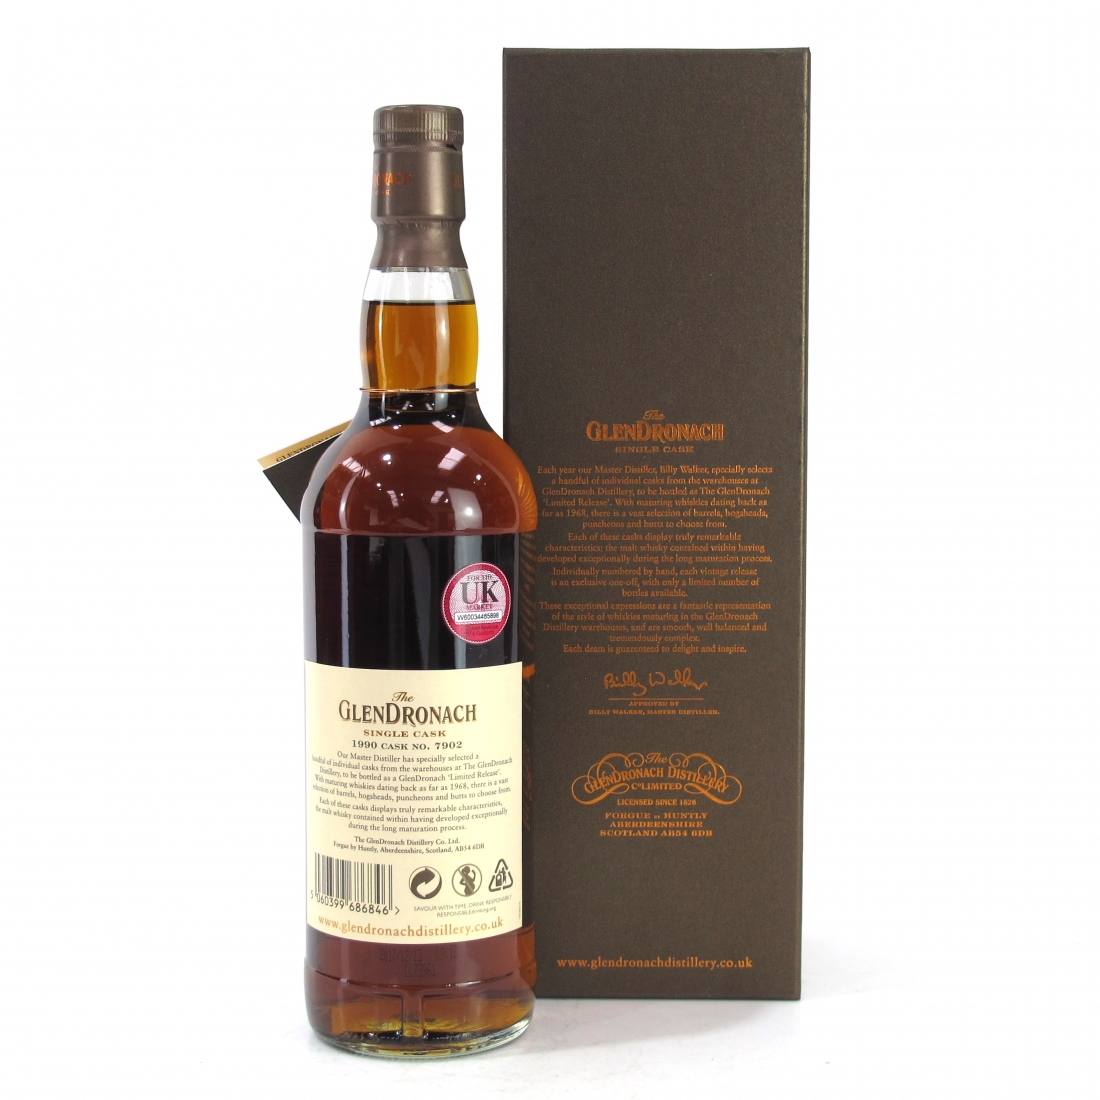 Glendronach 1990 Single Cask 27 Year Old #7902